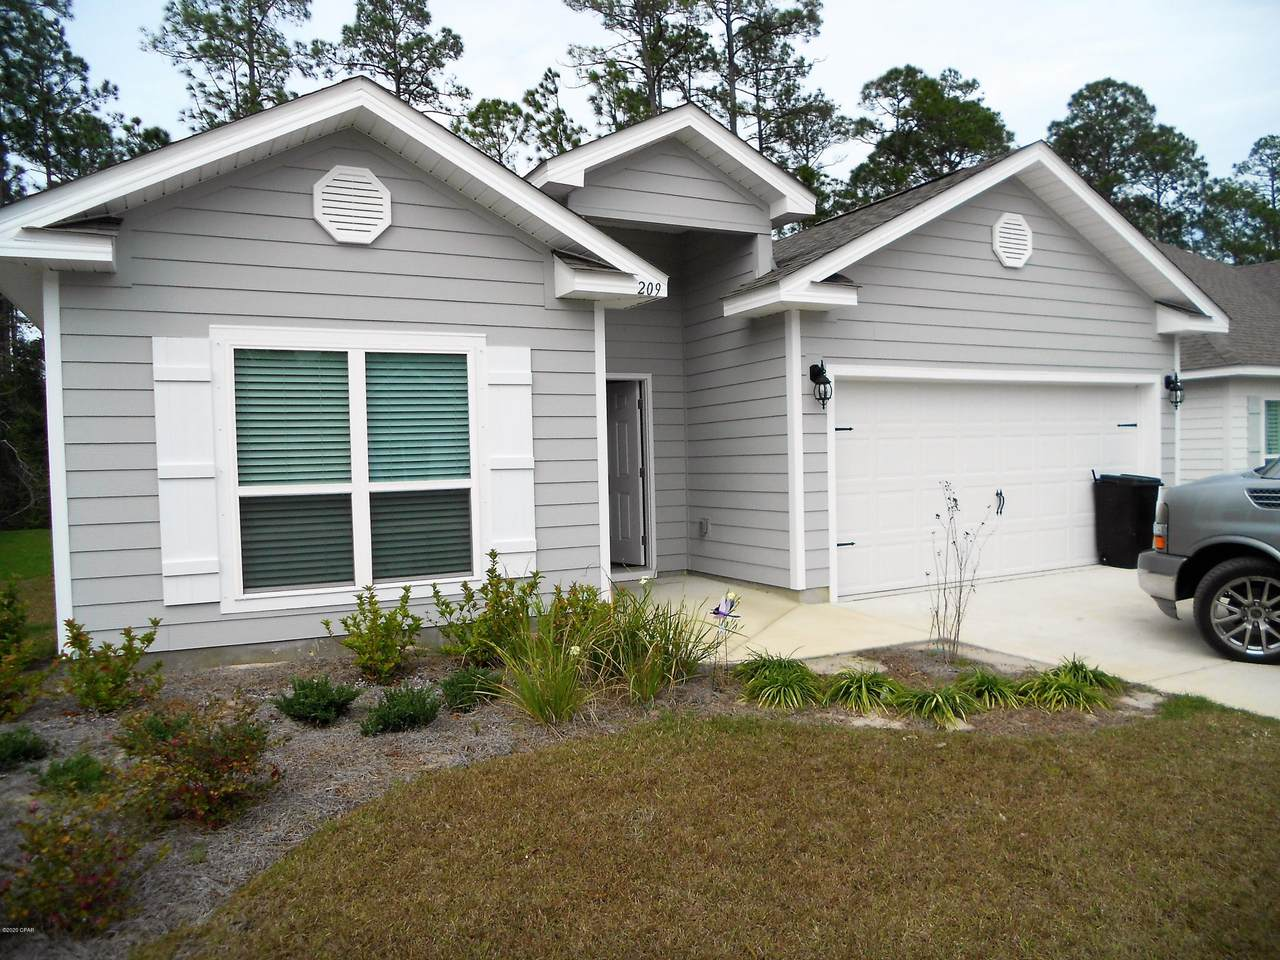 209 Southern Pines Road - Photo 1